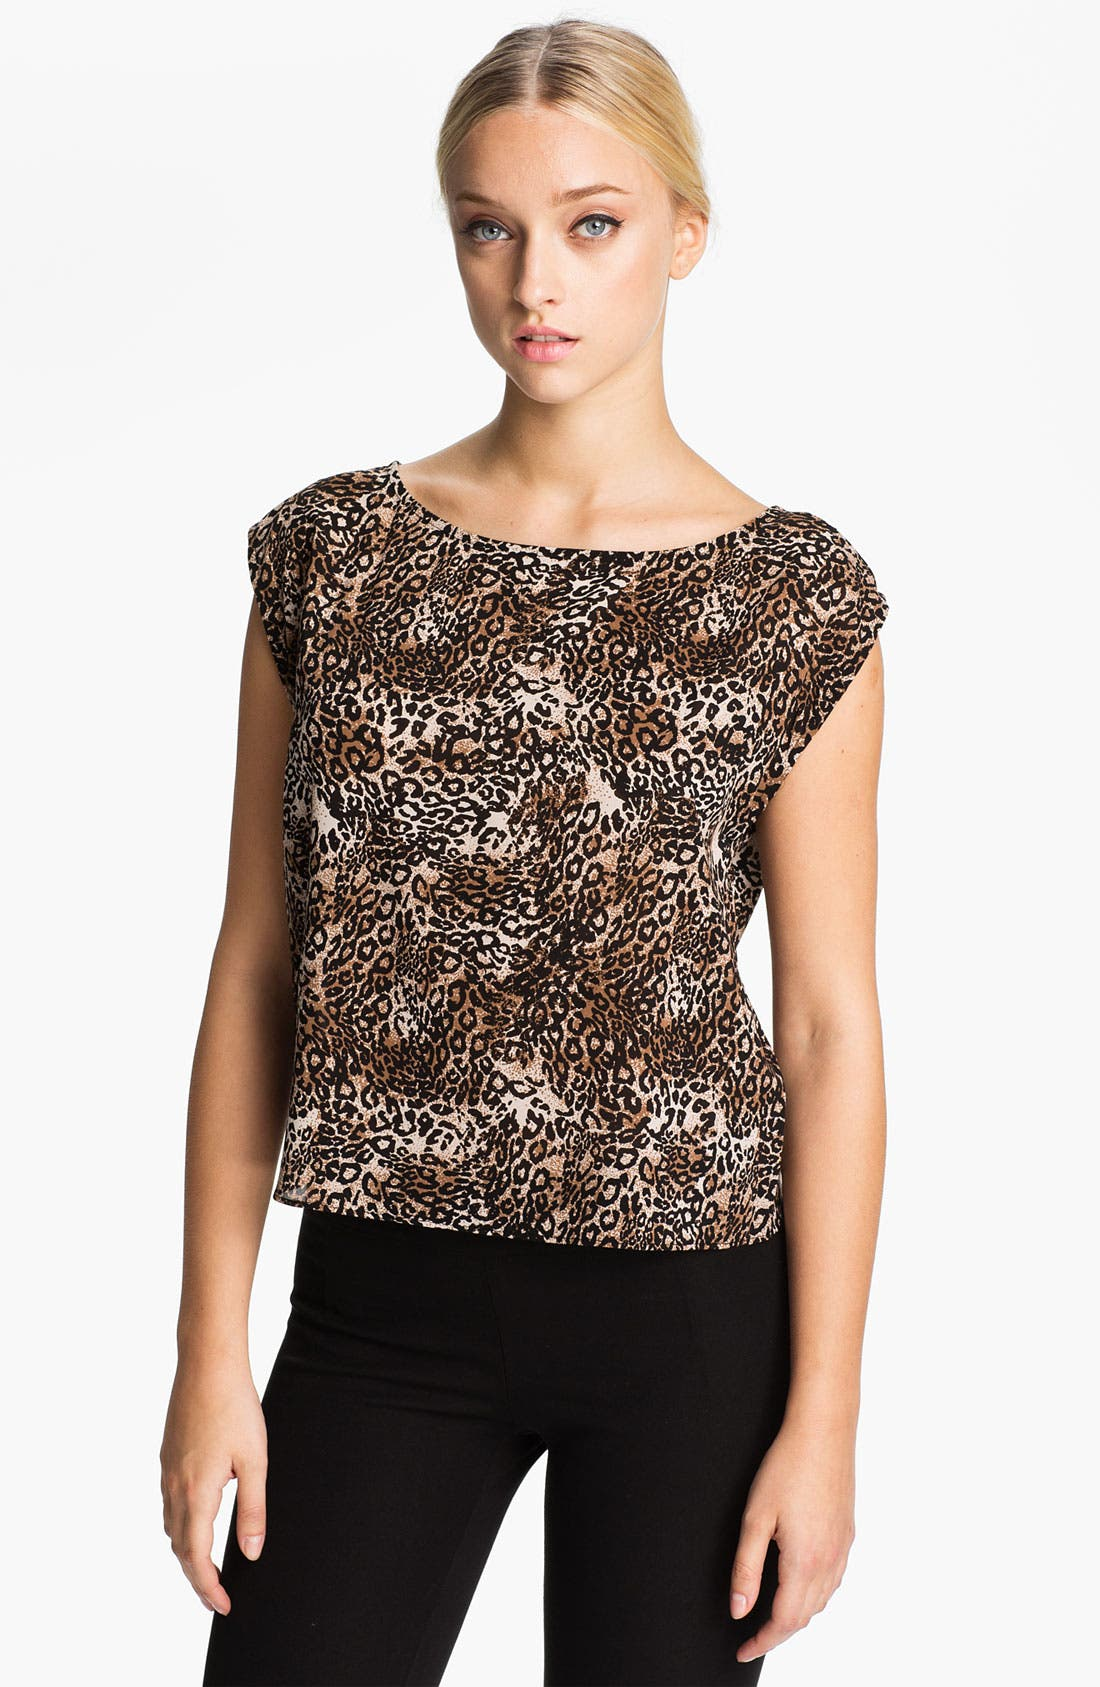 Main Image - Alice + Olivia 'Kinsley' Cheetah Print Top